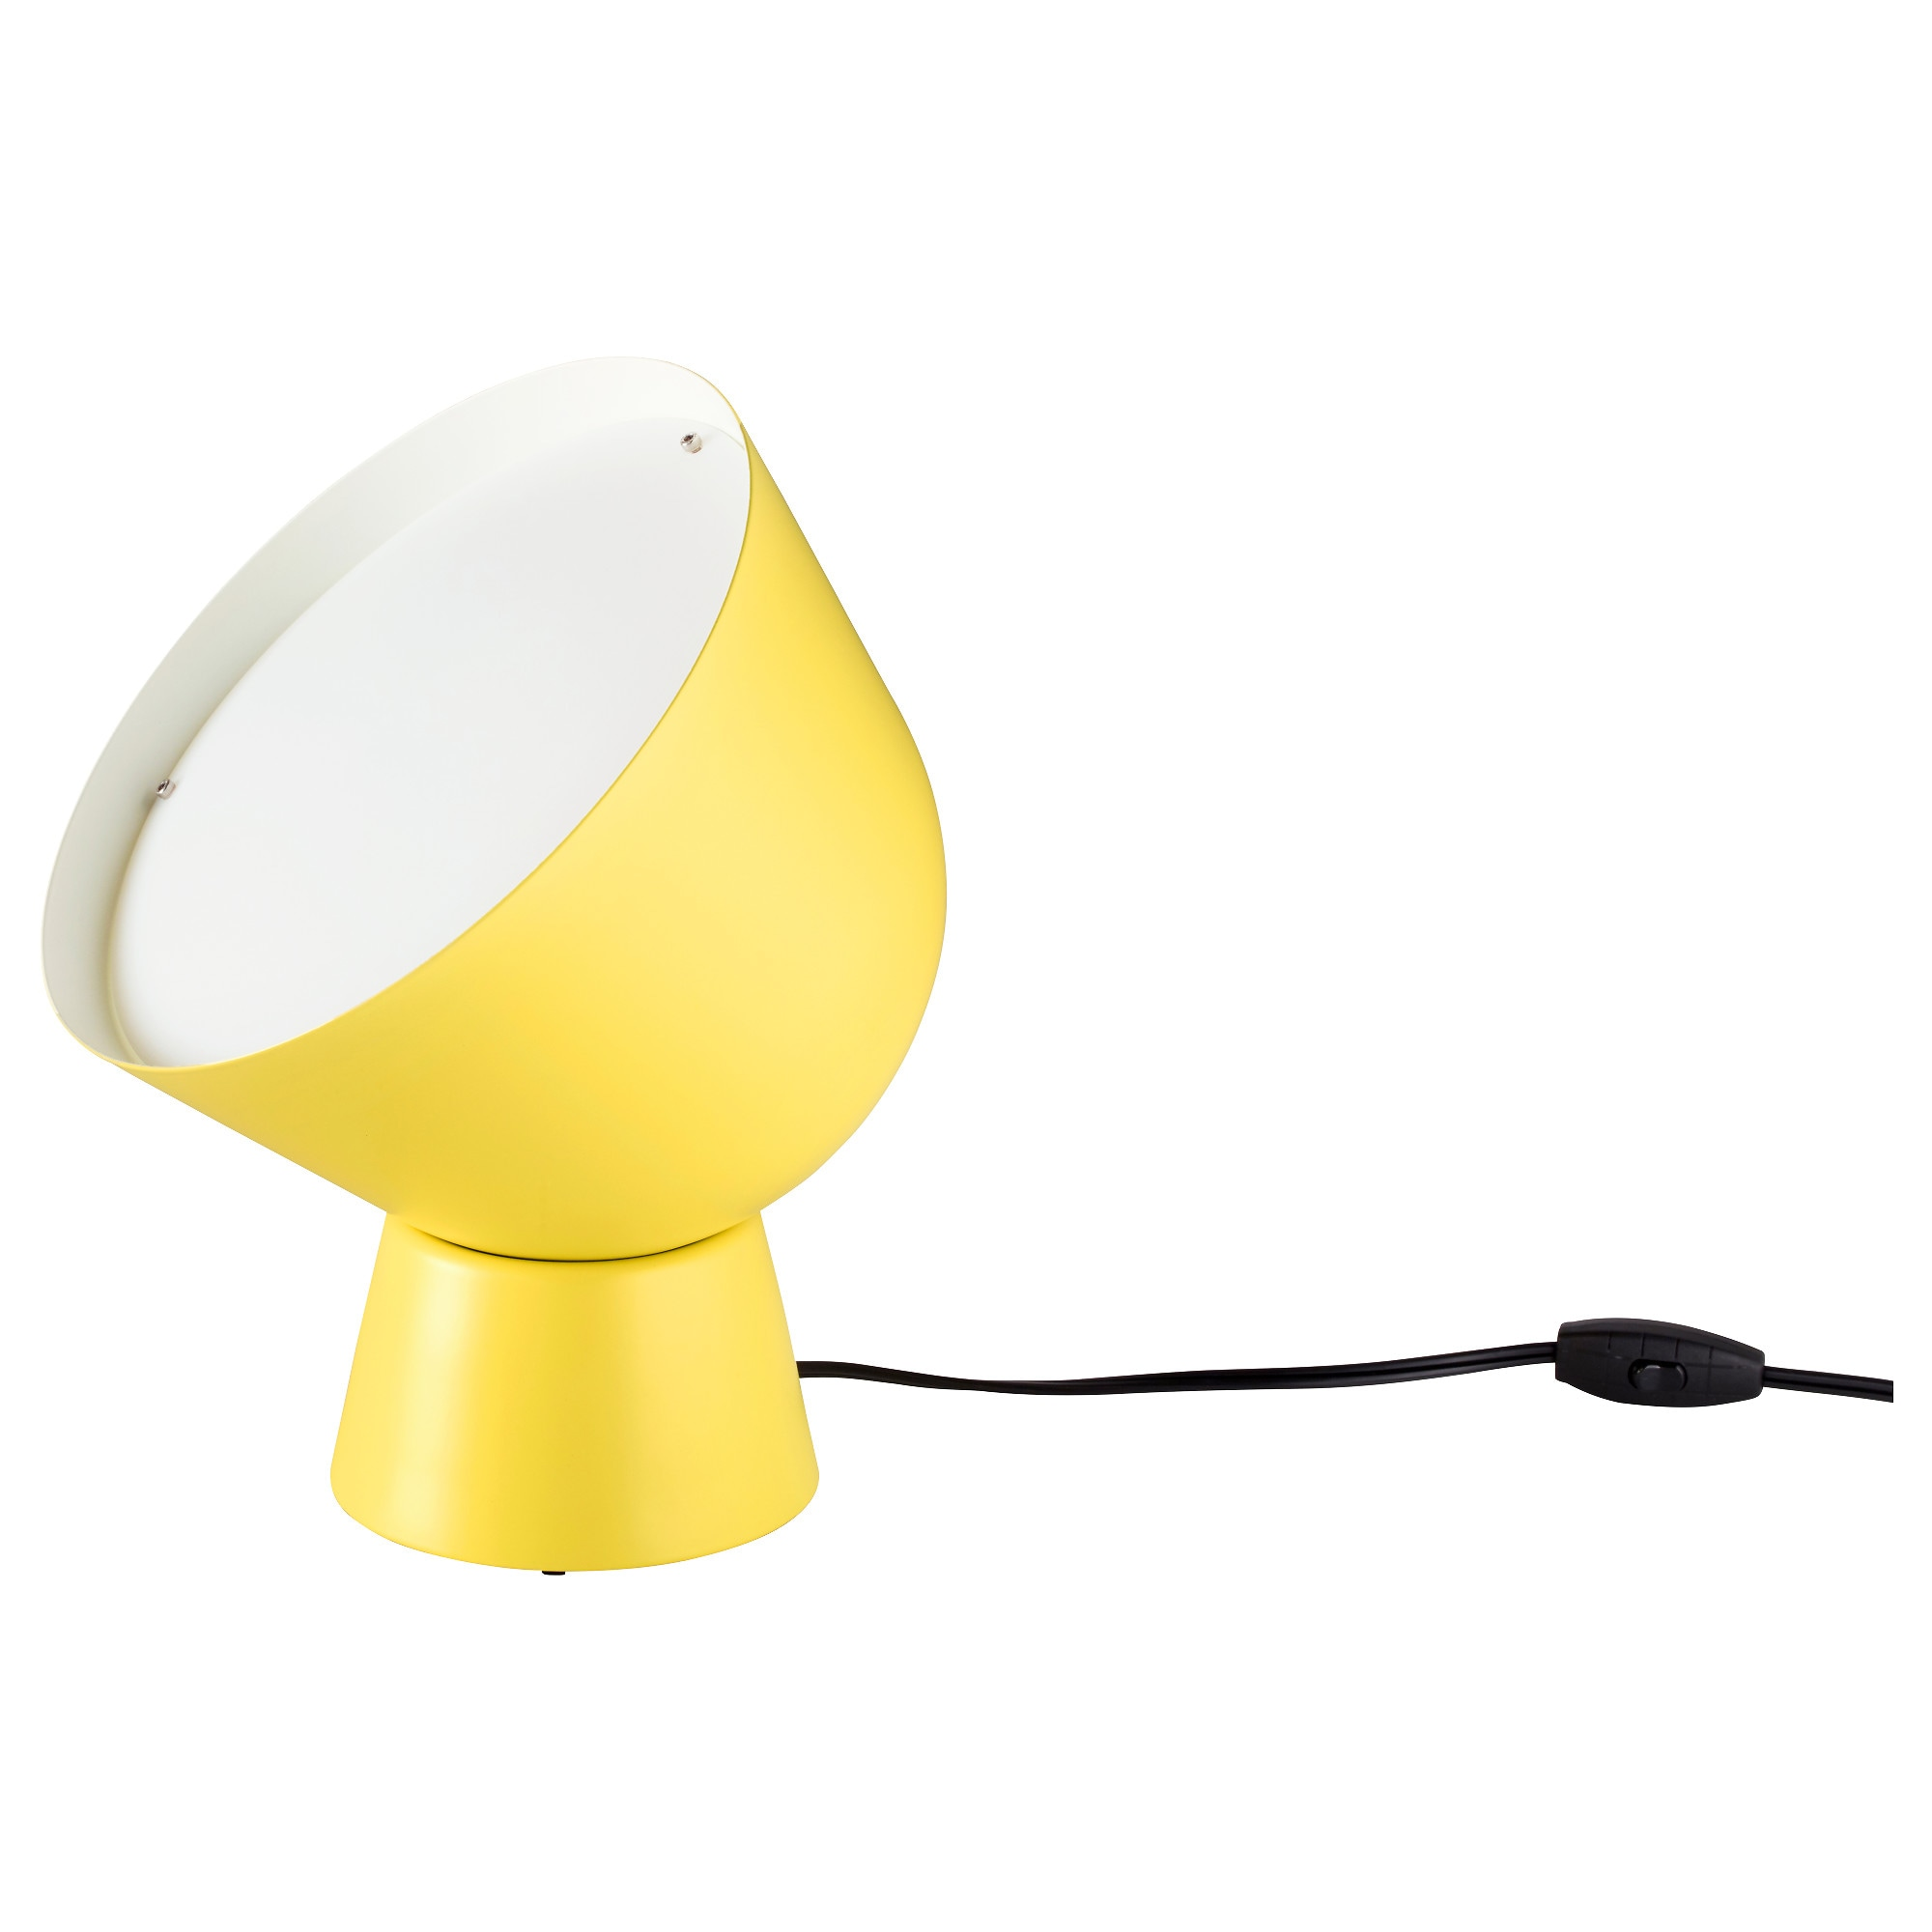 Ikea led desk lamp - Ikea Ps 2017 Table Lamp With Led Bulb Yellow Height 13 Diameter